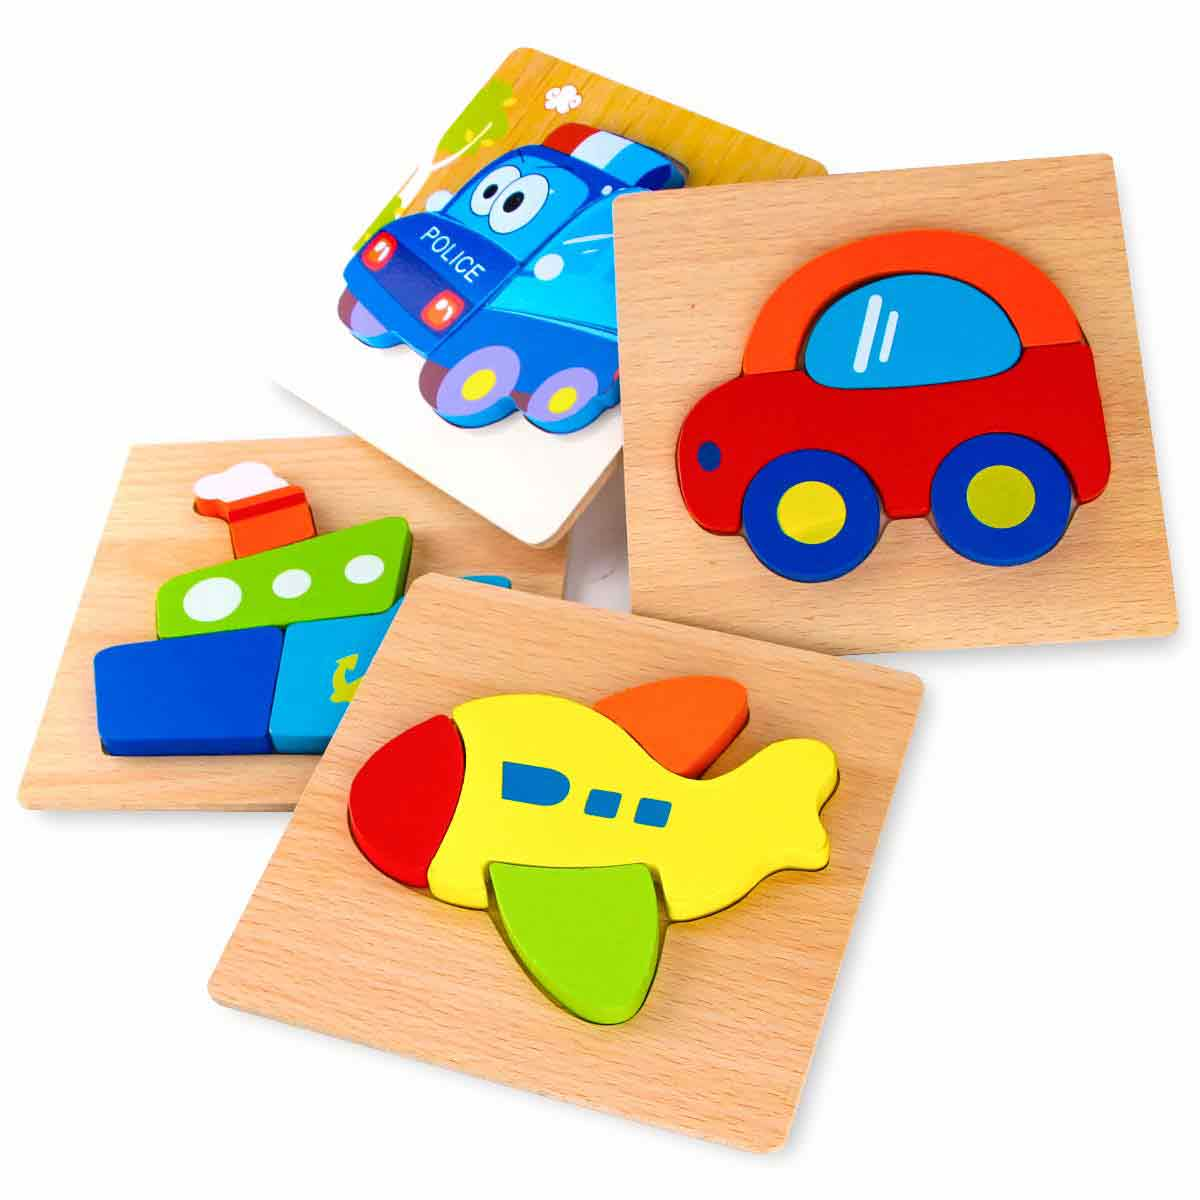 SKYFIELD Wooden Jigsaw Puzzles